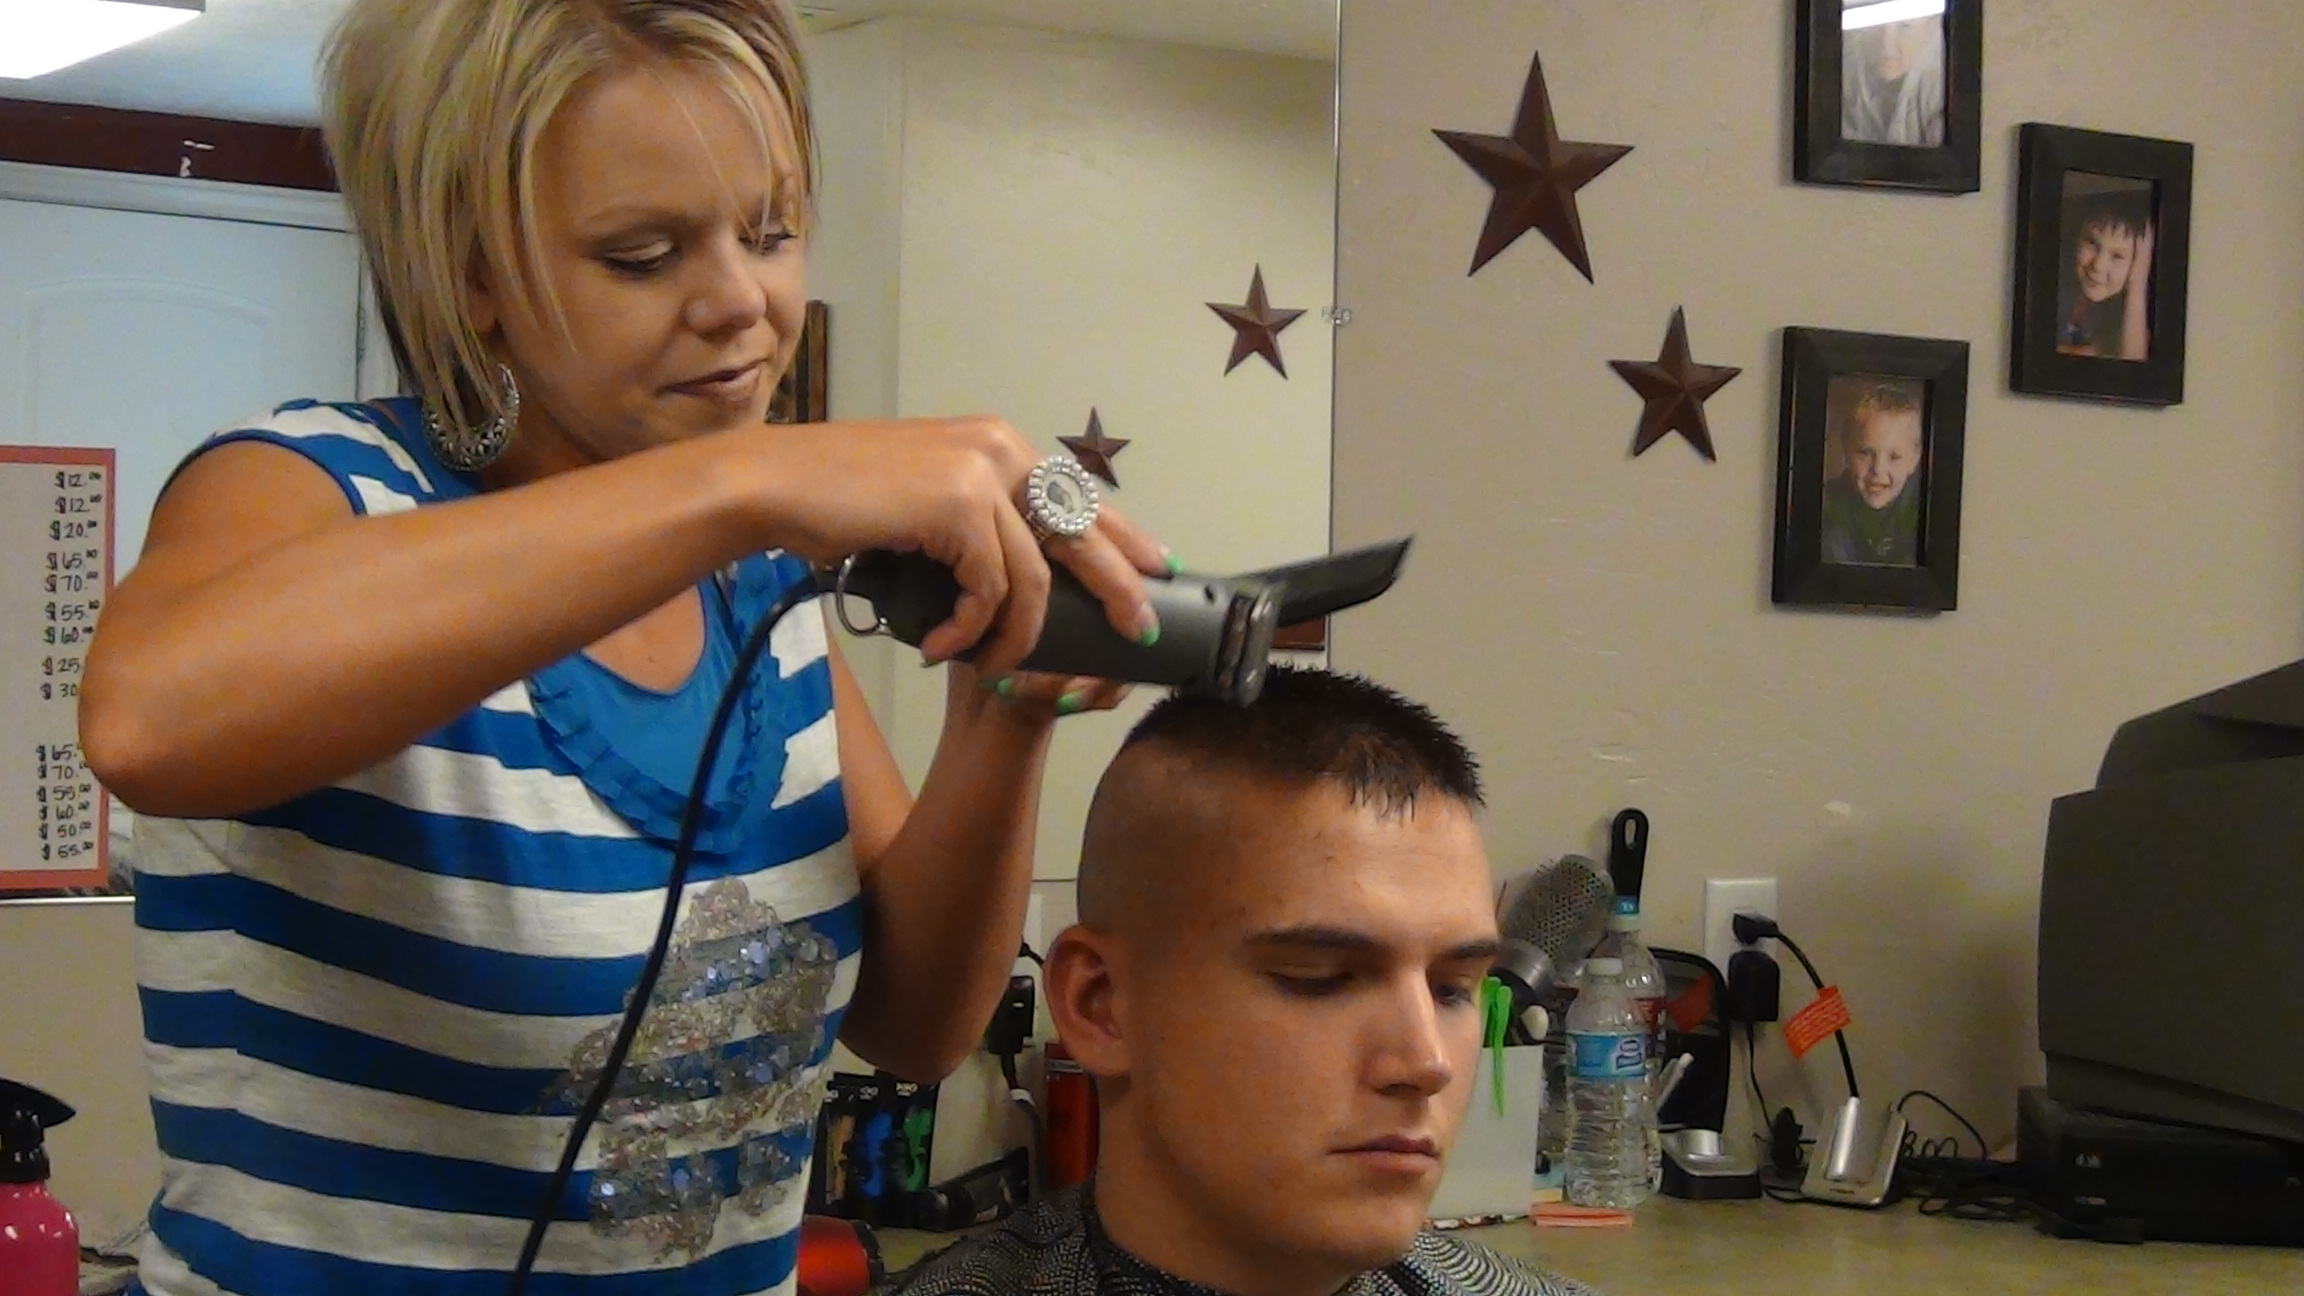 Boys Military High and Tight Haircut